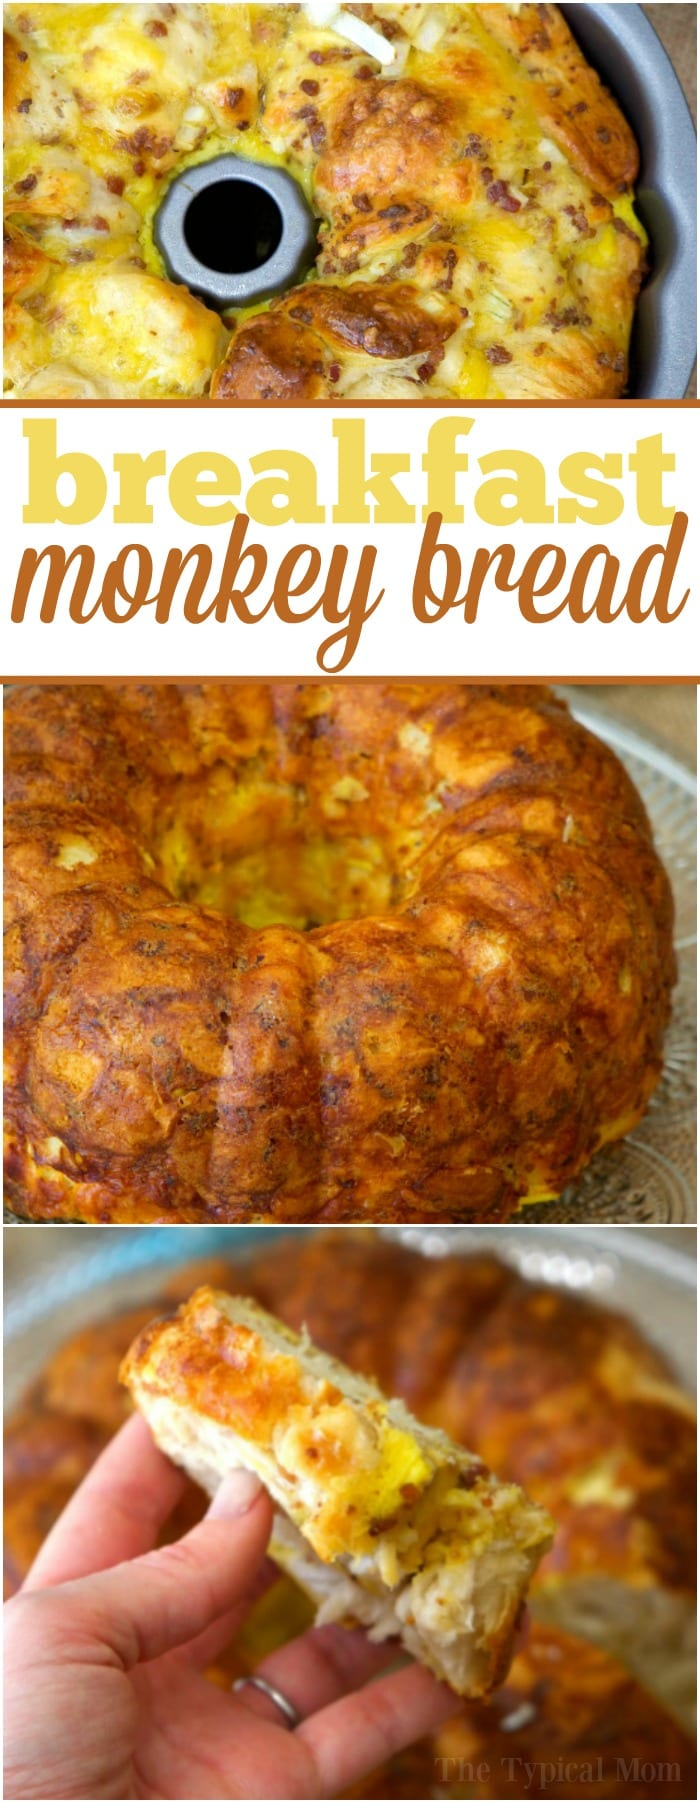 breakfast monkey bread 4